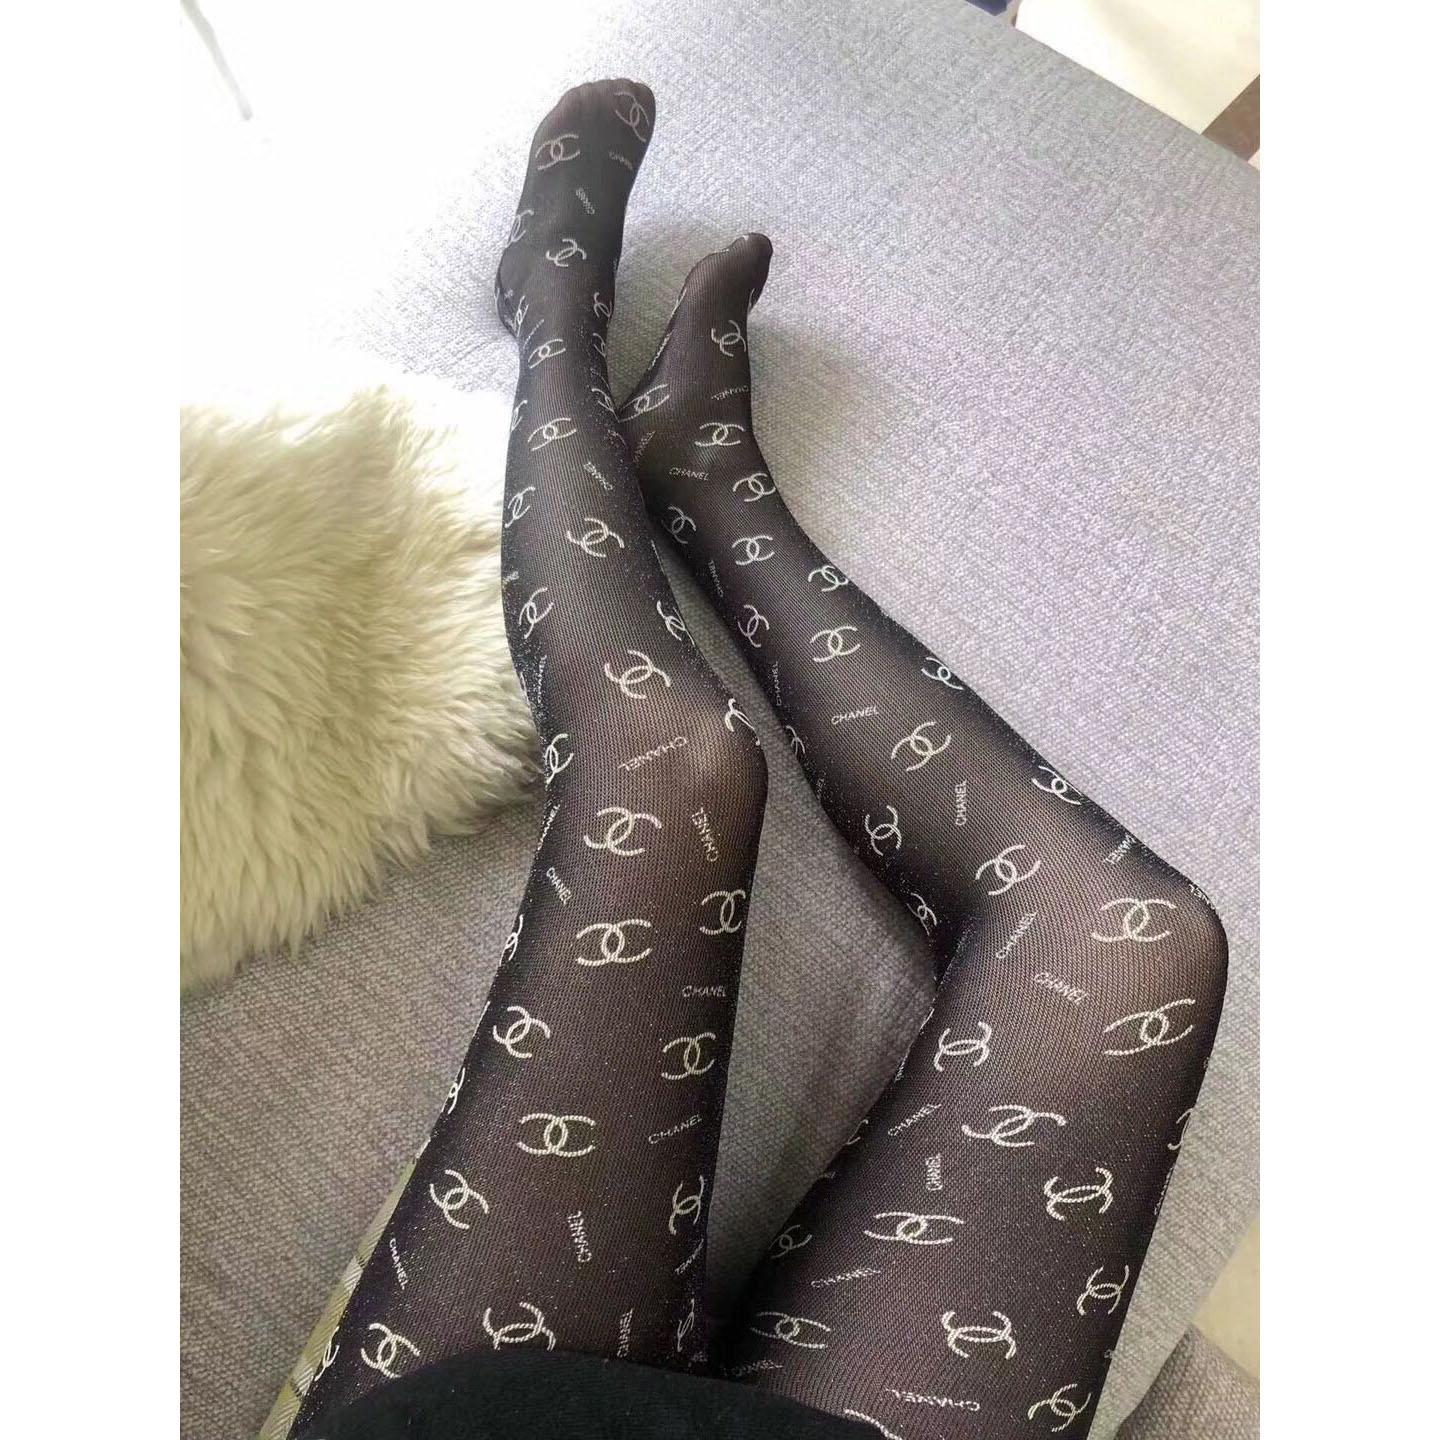 5e2e45b8a 2019 Womens Designer Tights 2019 Summer New Sexy Printed Stockings  Breathable Brand Lace Tights Luxury Ladies Socks From Brand fz6